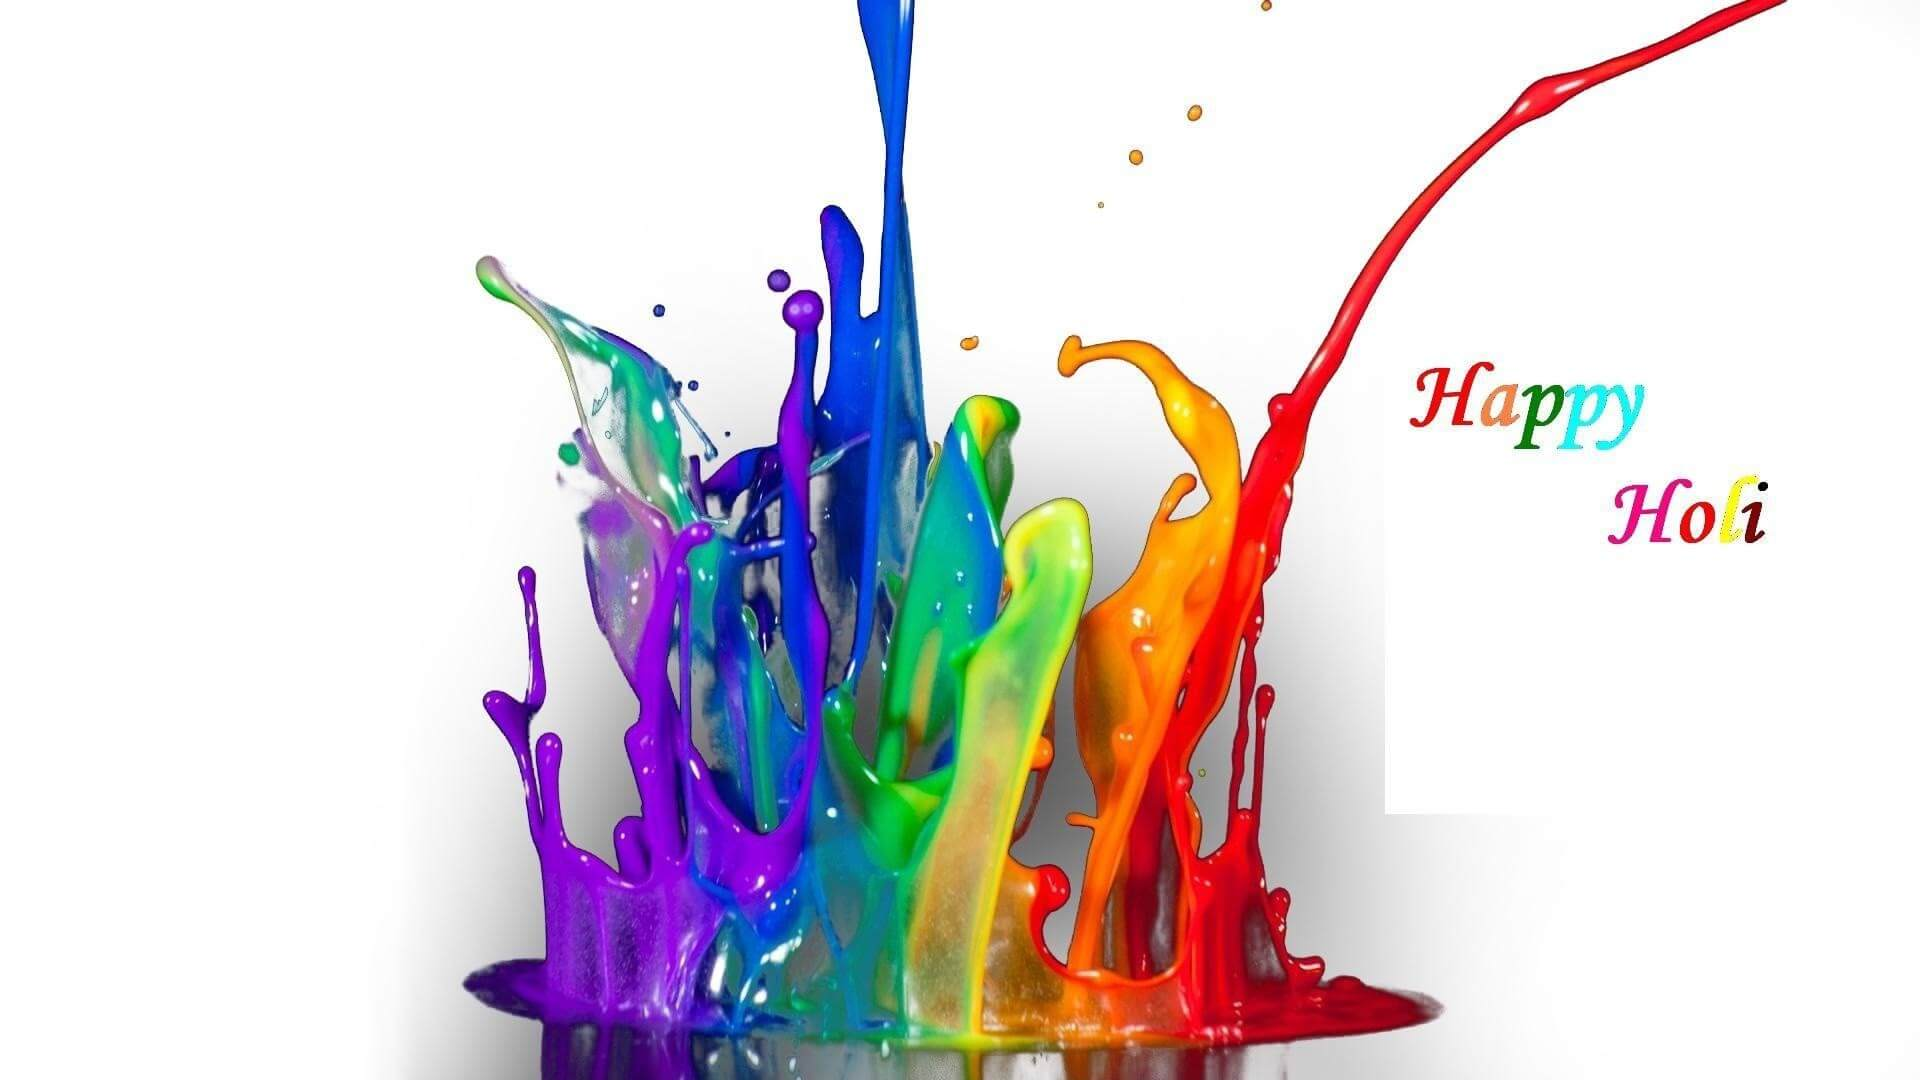 holi festival greetings wishes hd 3d wallpaper